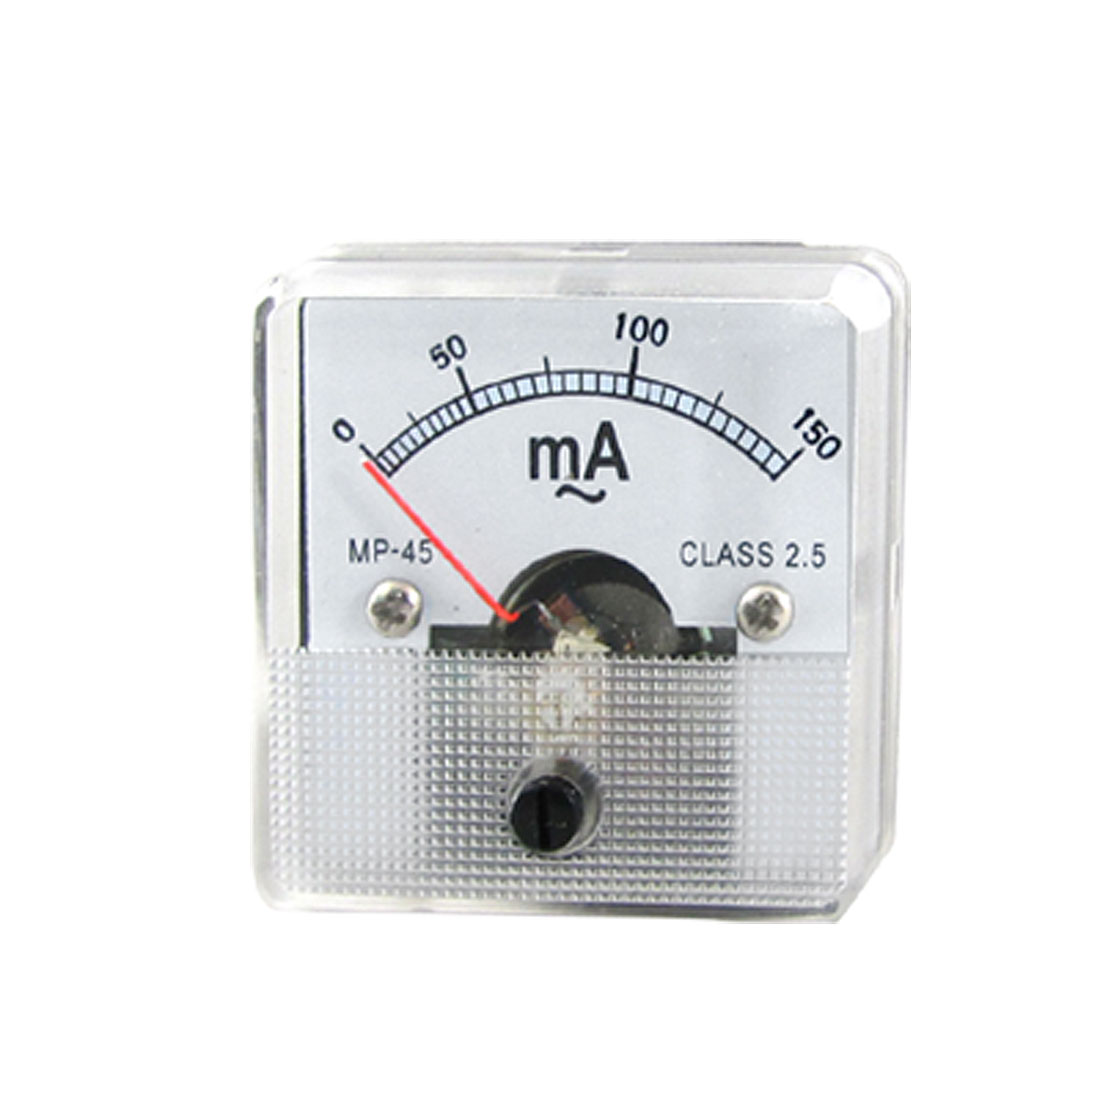 MP-45 Analog AC 0-150mA Current Panel Meter Ammeter